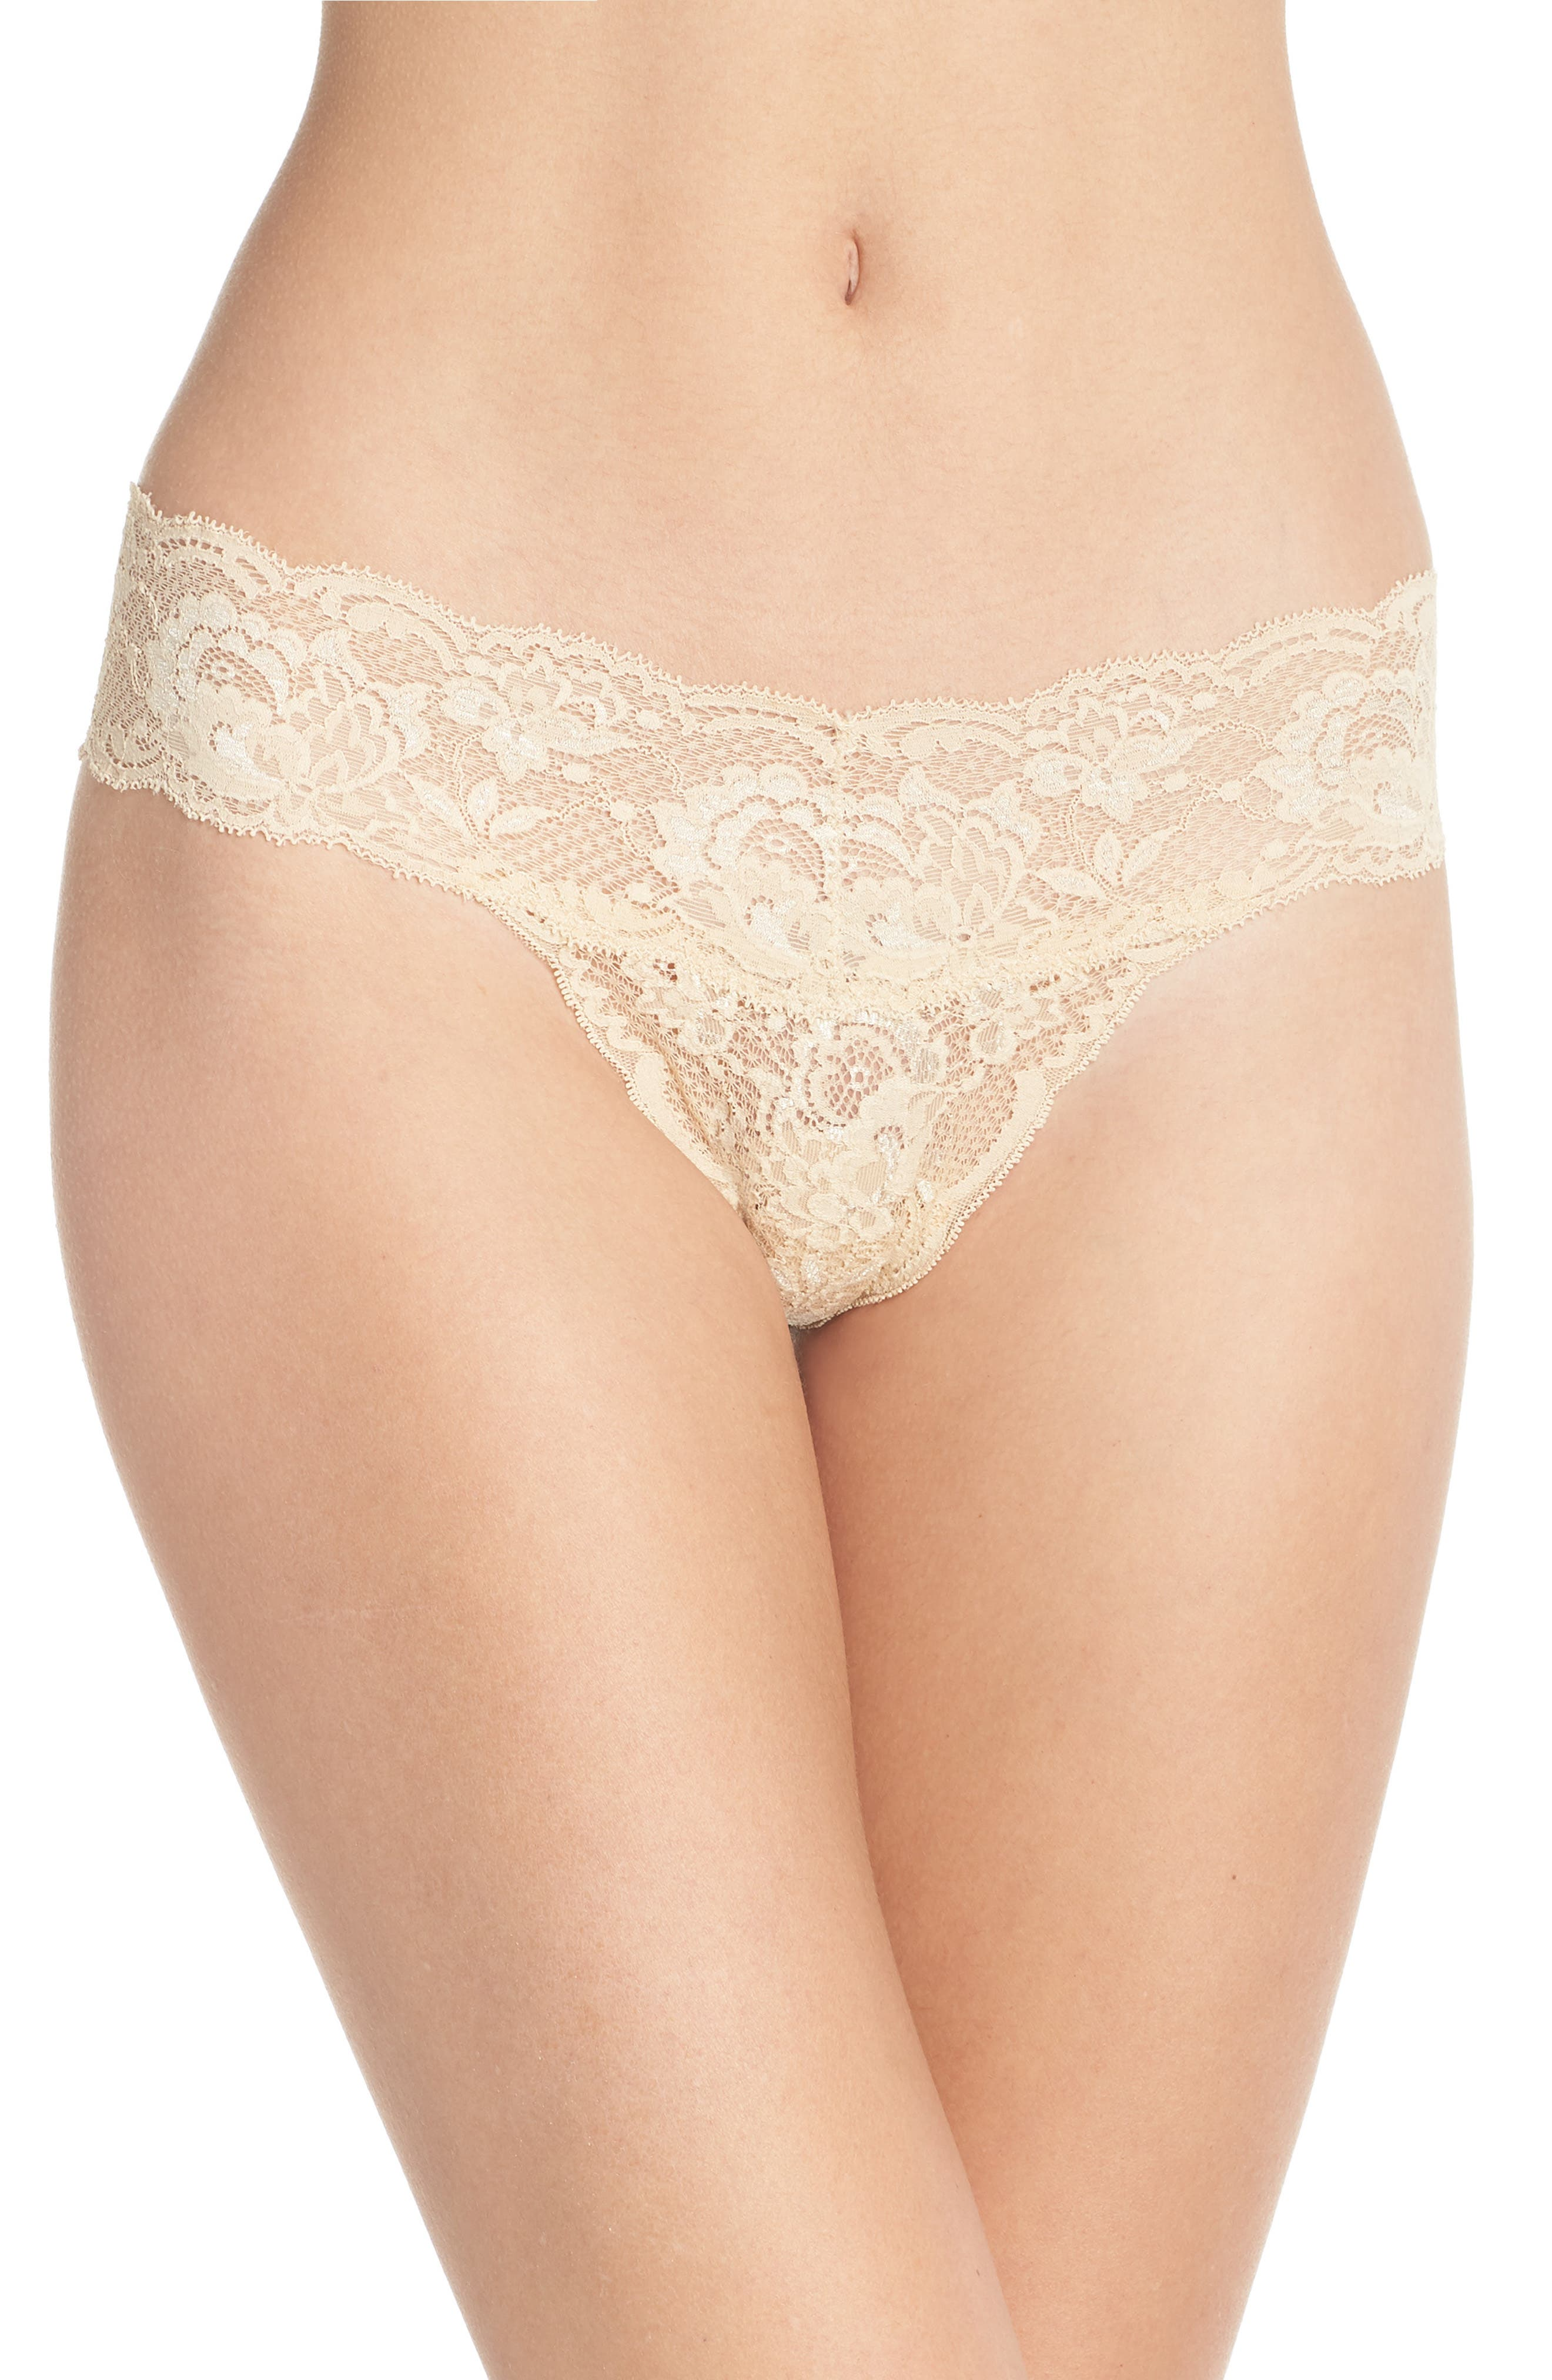 'Never Say Never Cutie' Thong,                             Alternate thumbnail 110, color,